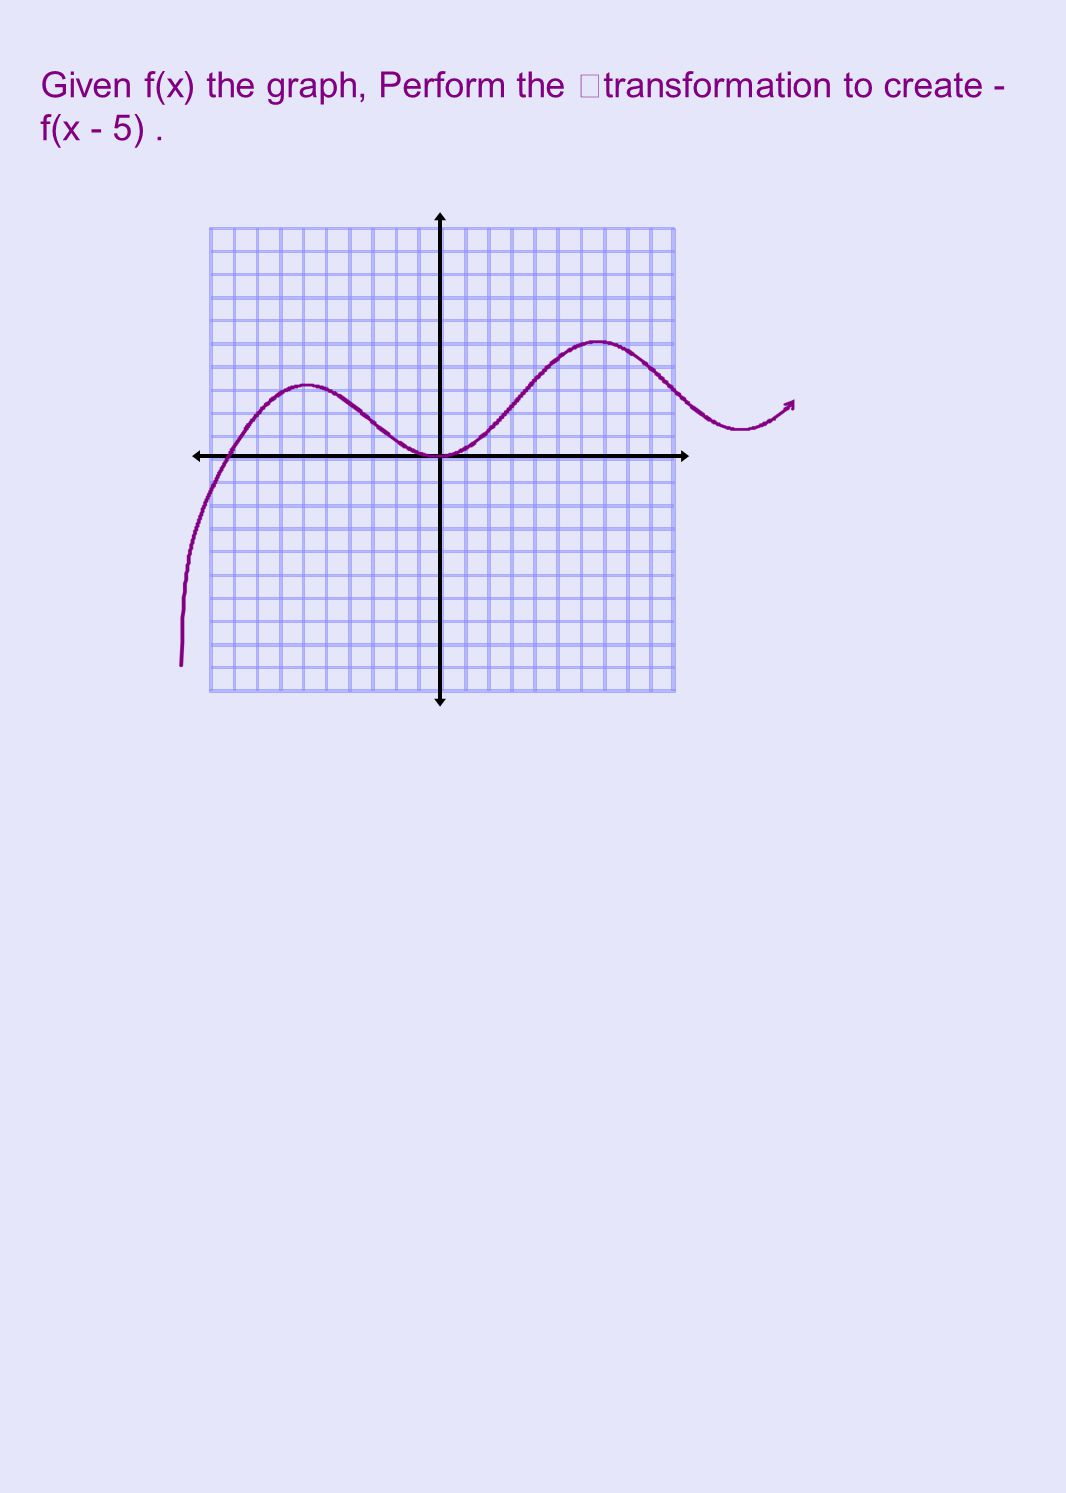 Given f(x) the graph, Perform the transformation to create -f(x - 5) .